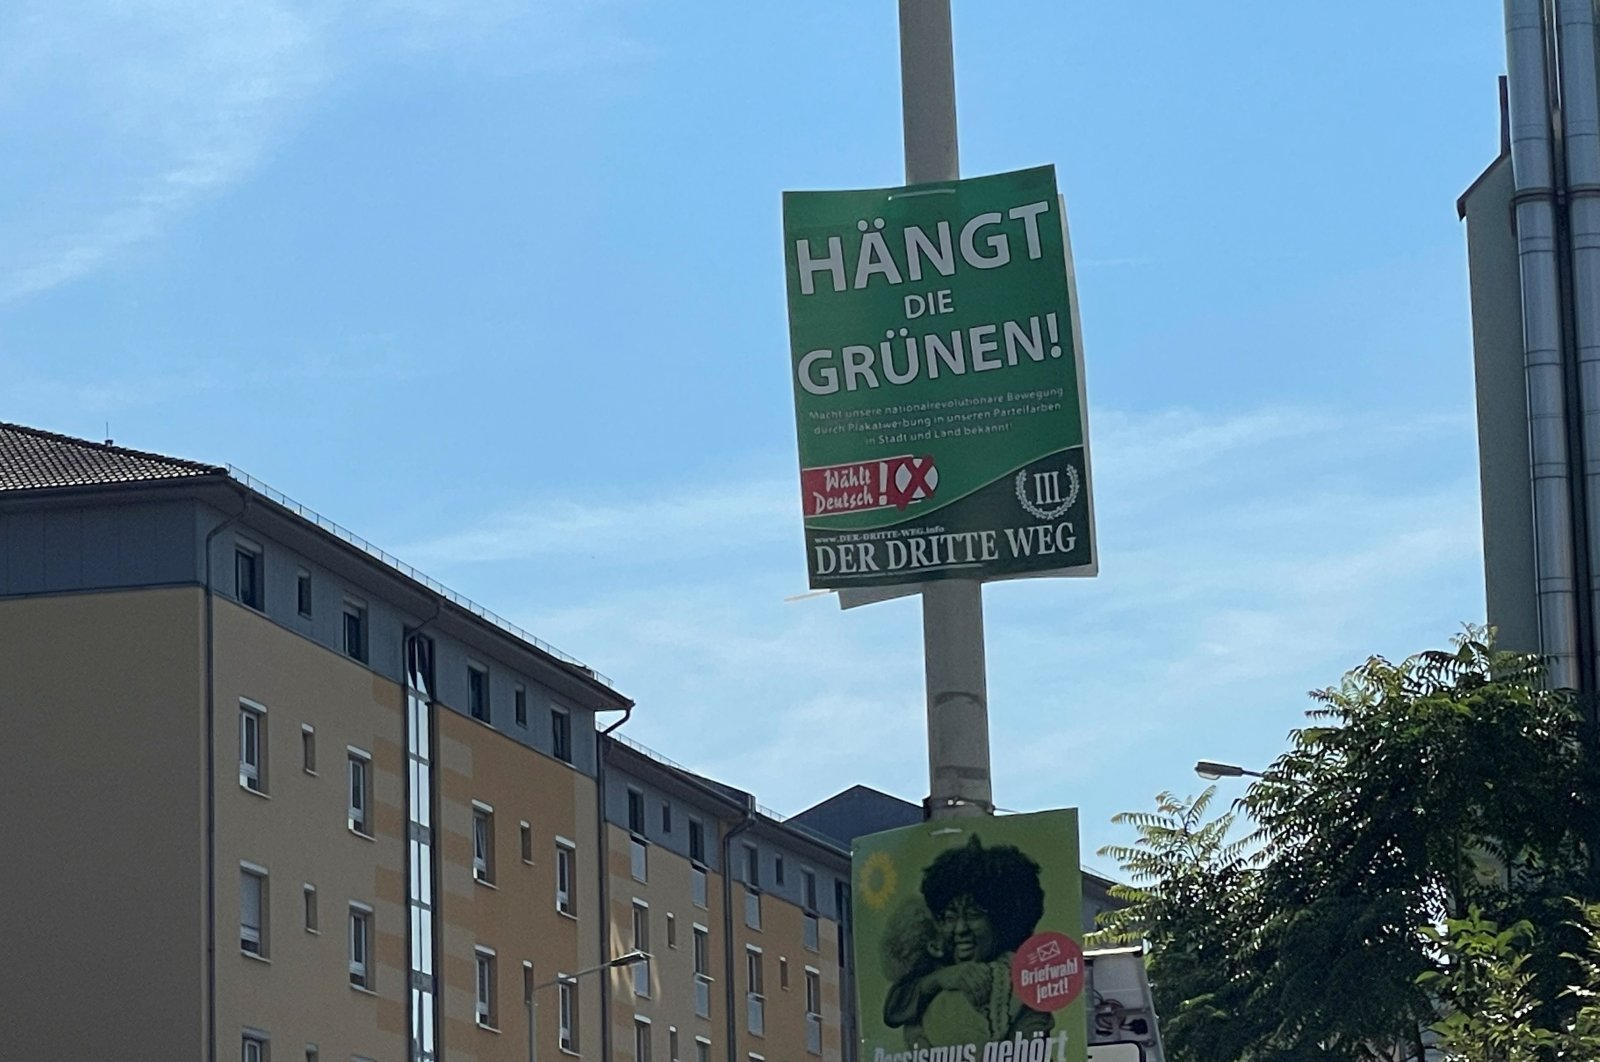 """An election poster saying """"Hang The Greens,"""" placed by Der Dritte Weg, a far-right party with suspected links to neo-Nazi groups, in Zwickau, Germany, Sept. 8, 2021. (Radio Zwickau Handout via Reuters)"""